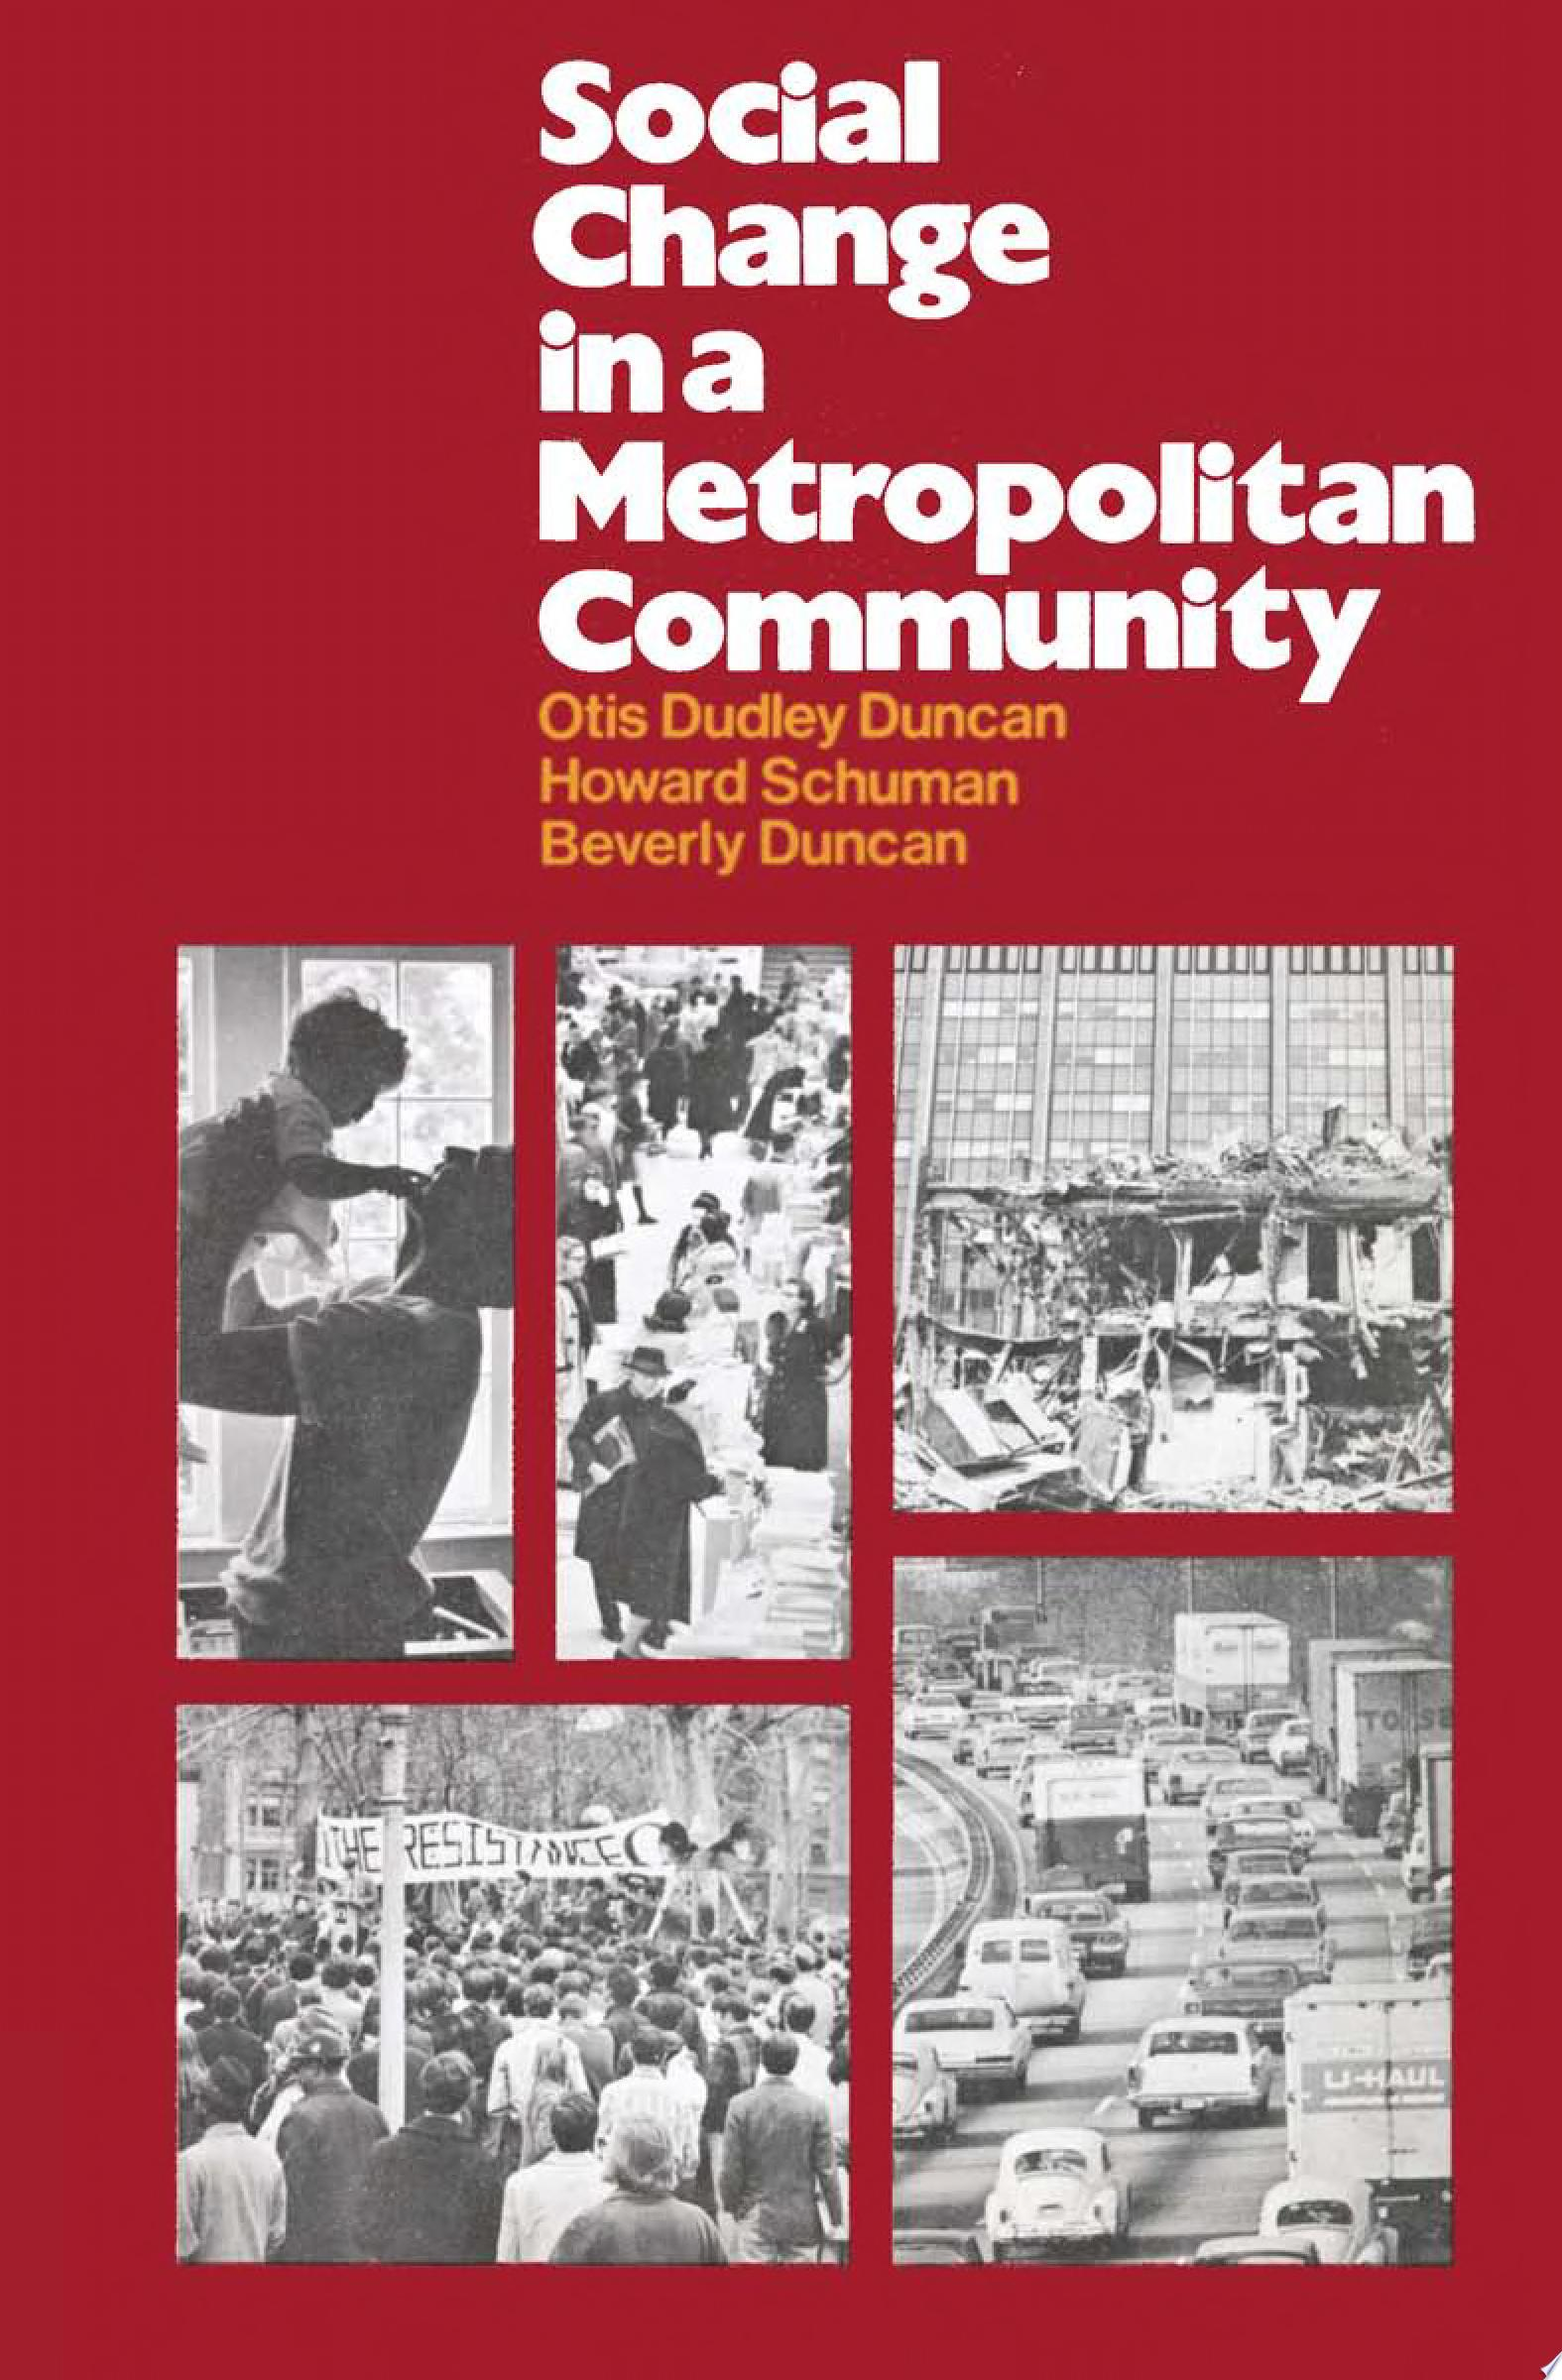 Social Change in a Metropolitan Community